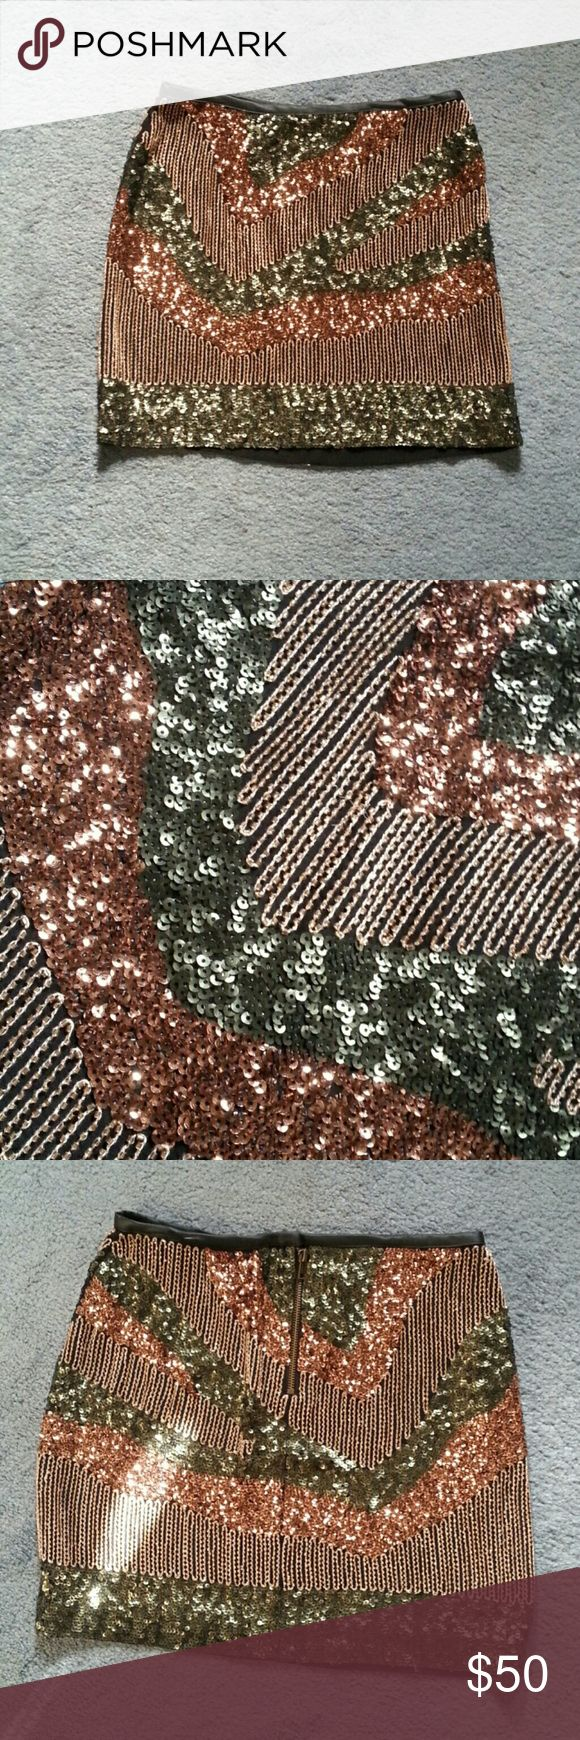 H&M NYE Sequin Skirt Never worn!! Brand new without tags. You will look amazing in this. Get it, girl. H&M Skirts Mini